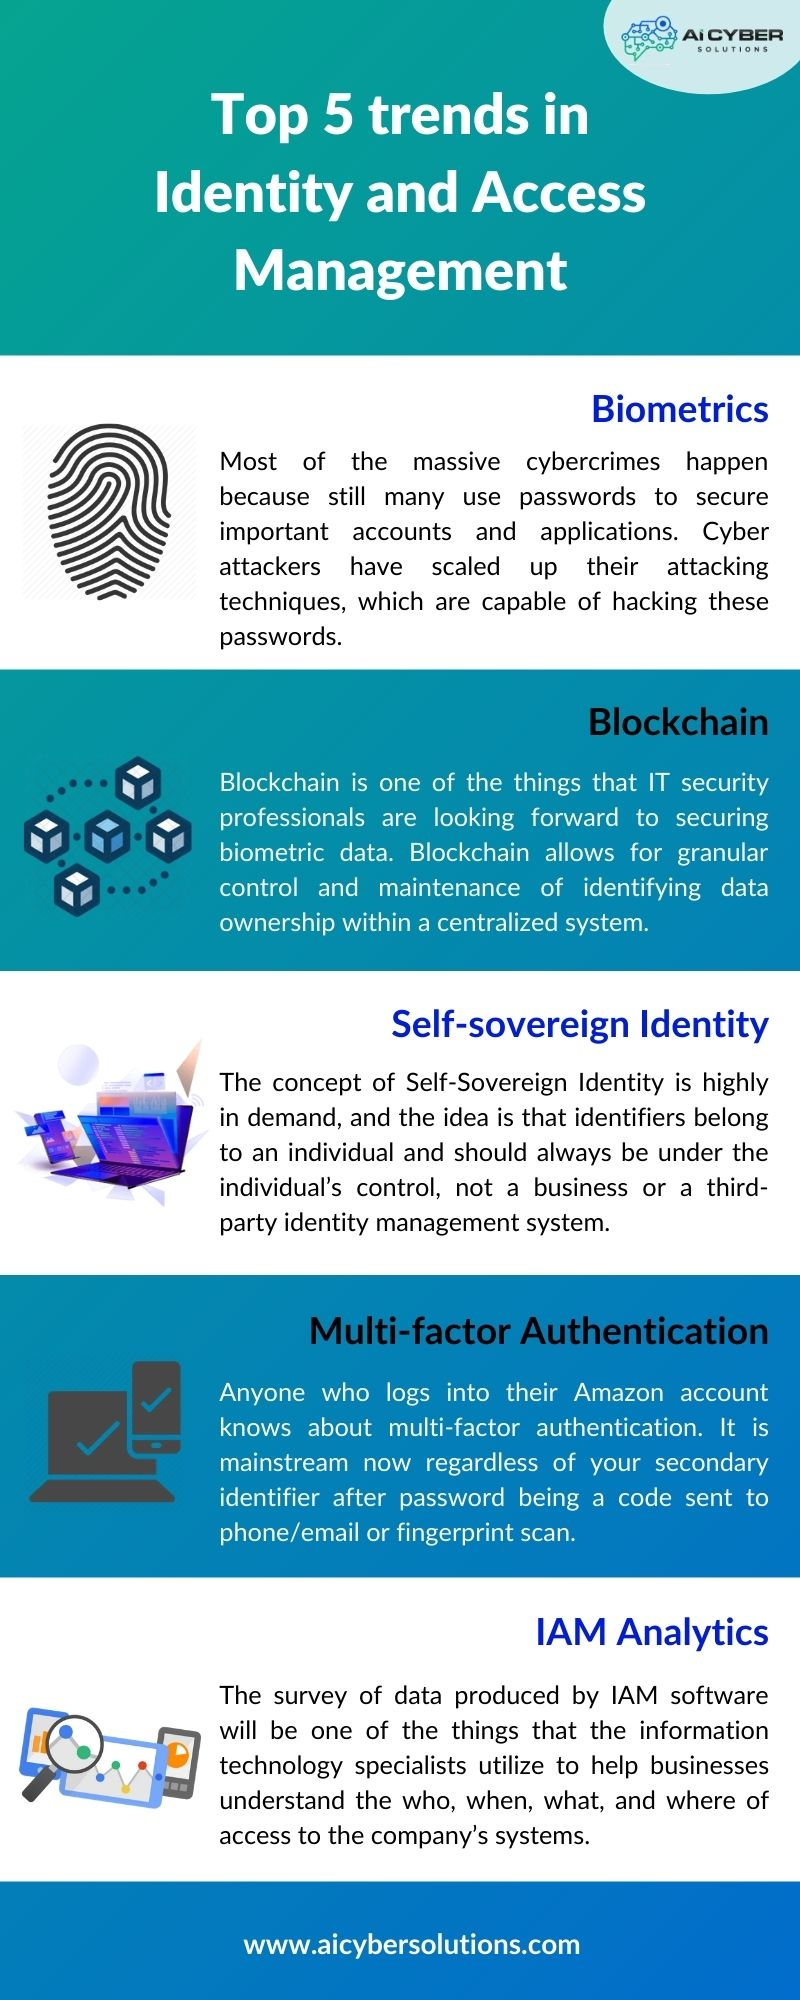 Top 5 trends in Identity and Access Management